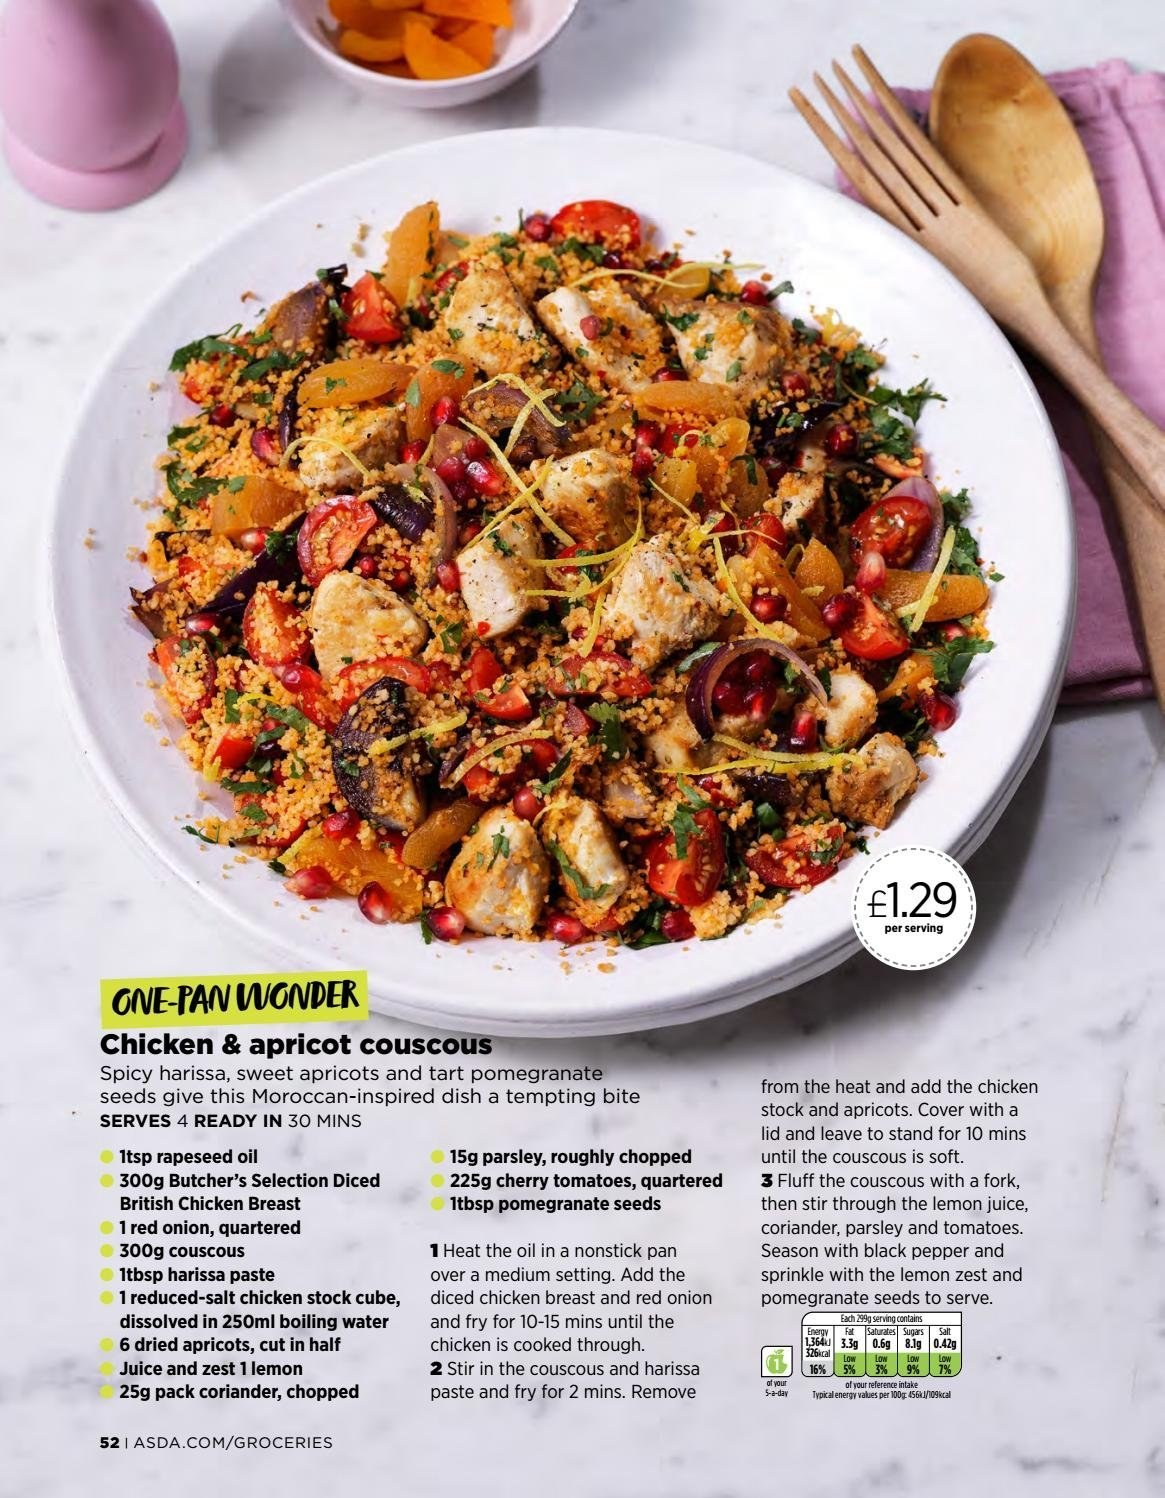 ASDA offer  - 1.3.2019 - 31.3.2019 - Sales products - tomatoes, onion, pomegranate, apricots, chicken breasts, chicken meat, tart, salt, couscous, parsley, black pepper, coriander, oil, lemon juice, fork, lid, pan. Page 52.